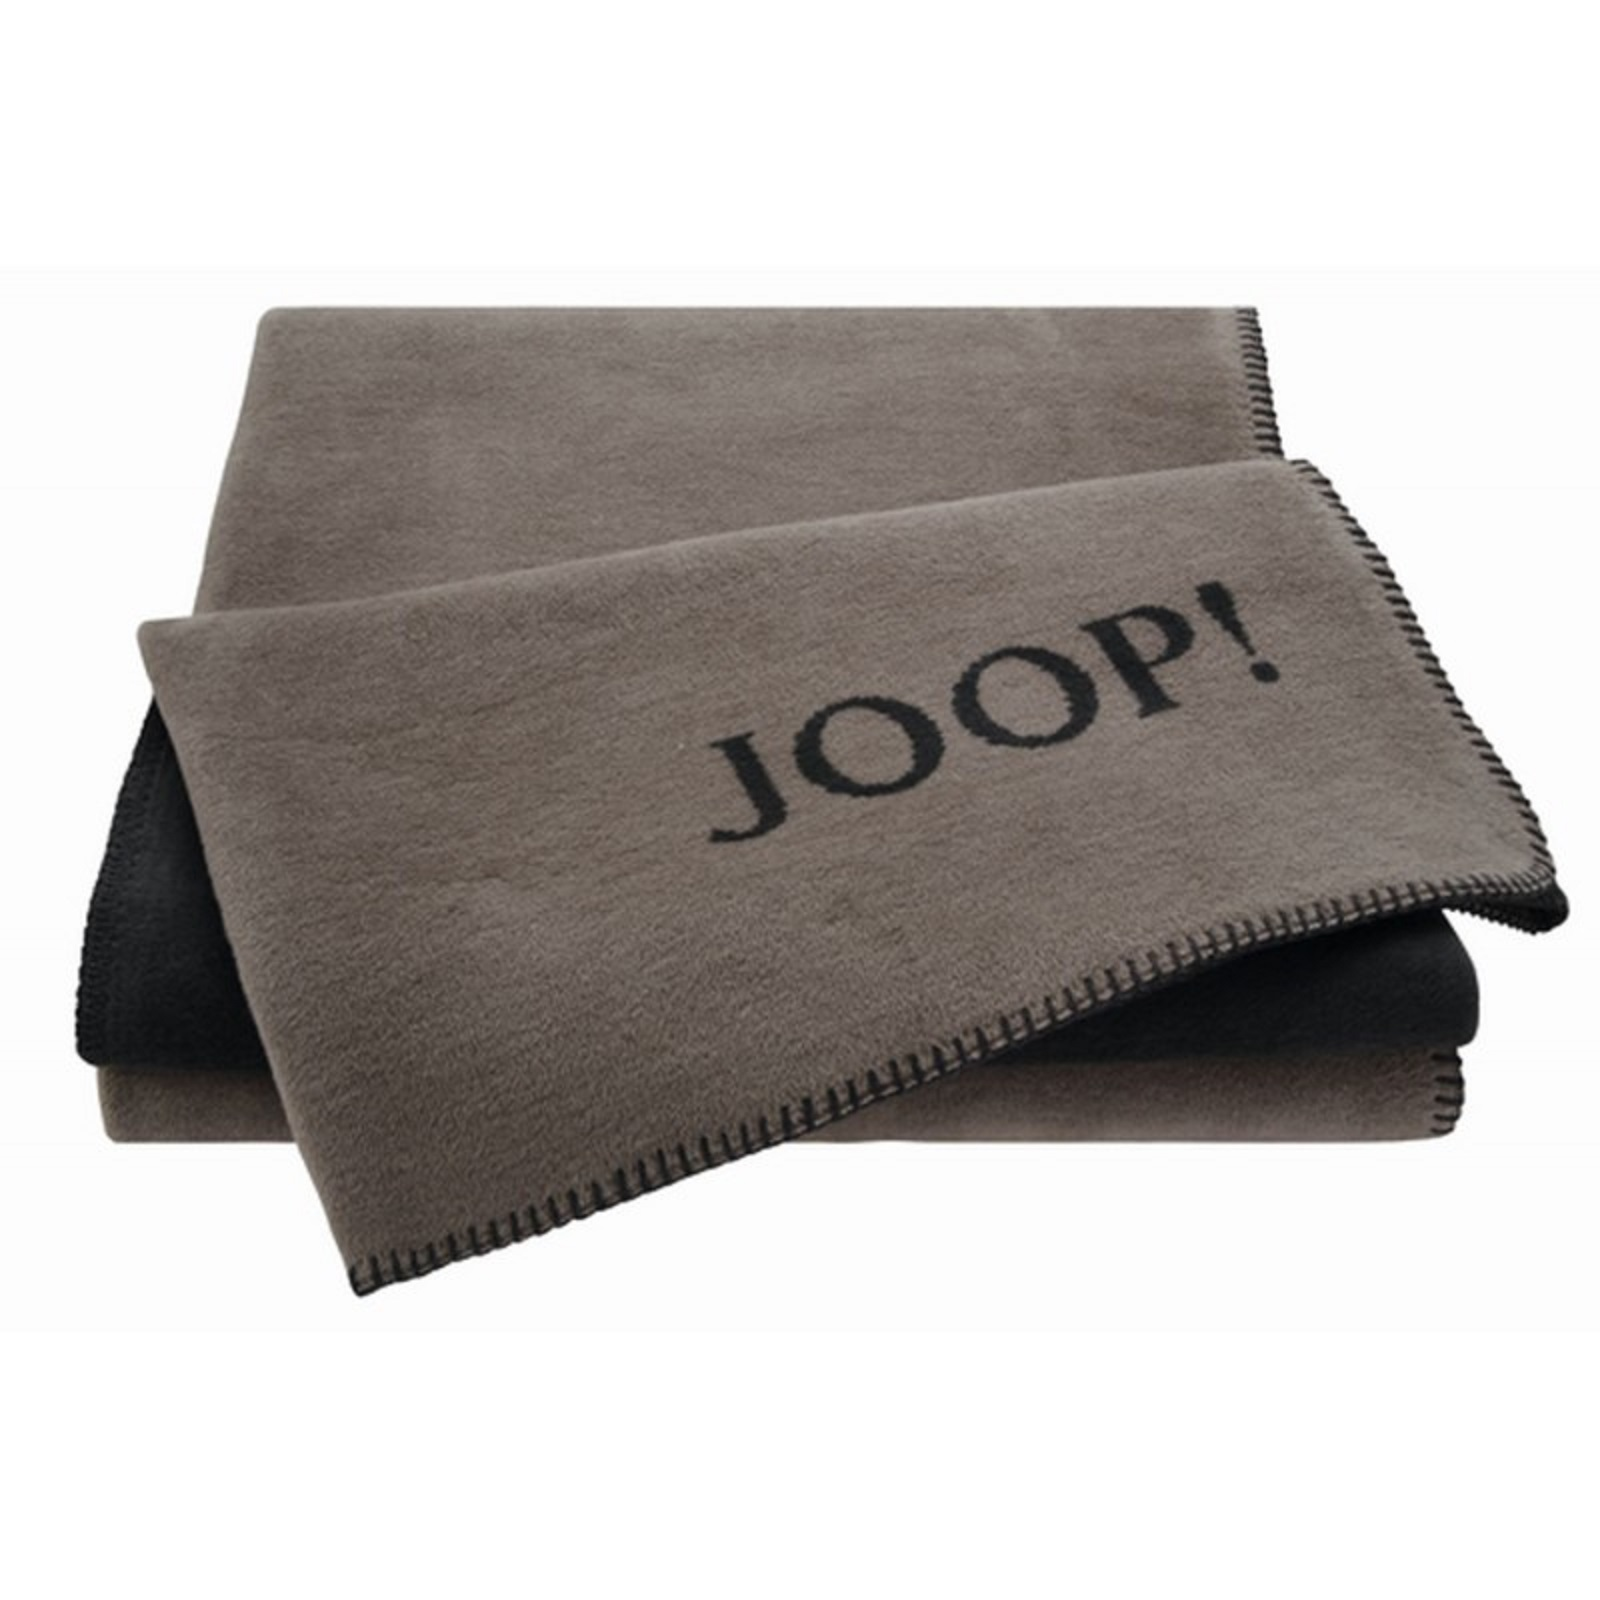 joop uni doubleface wohndecke kuscheldecke decke 631381 taupe anthr neu. Black Bedroom Furniture Sets. Home Design Ideas